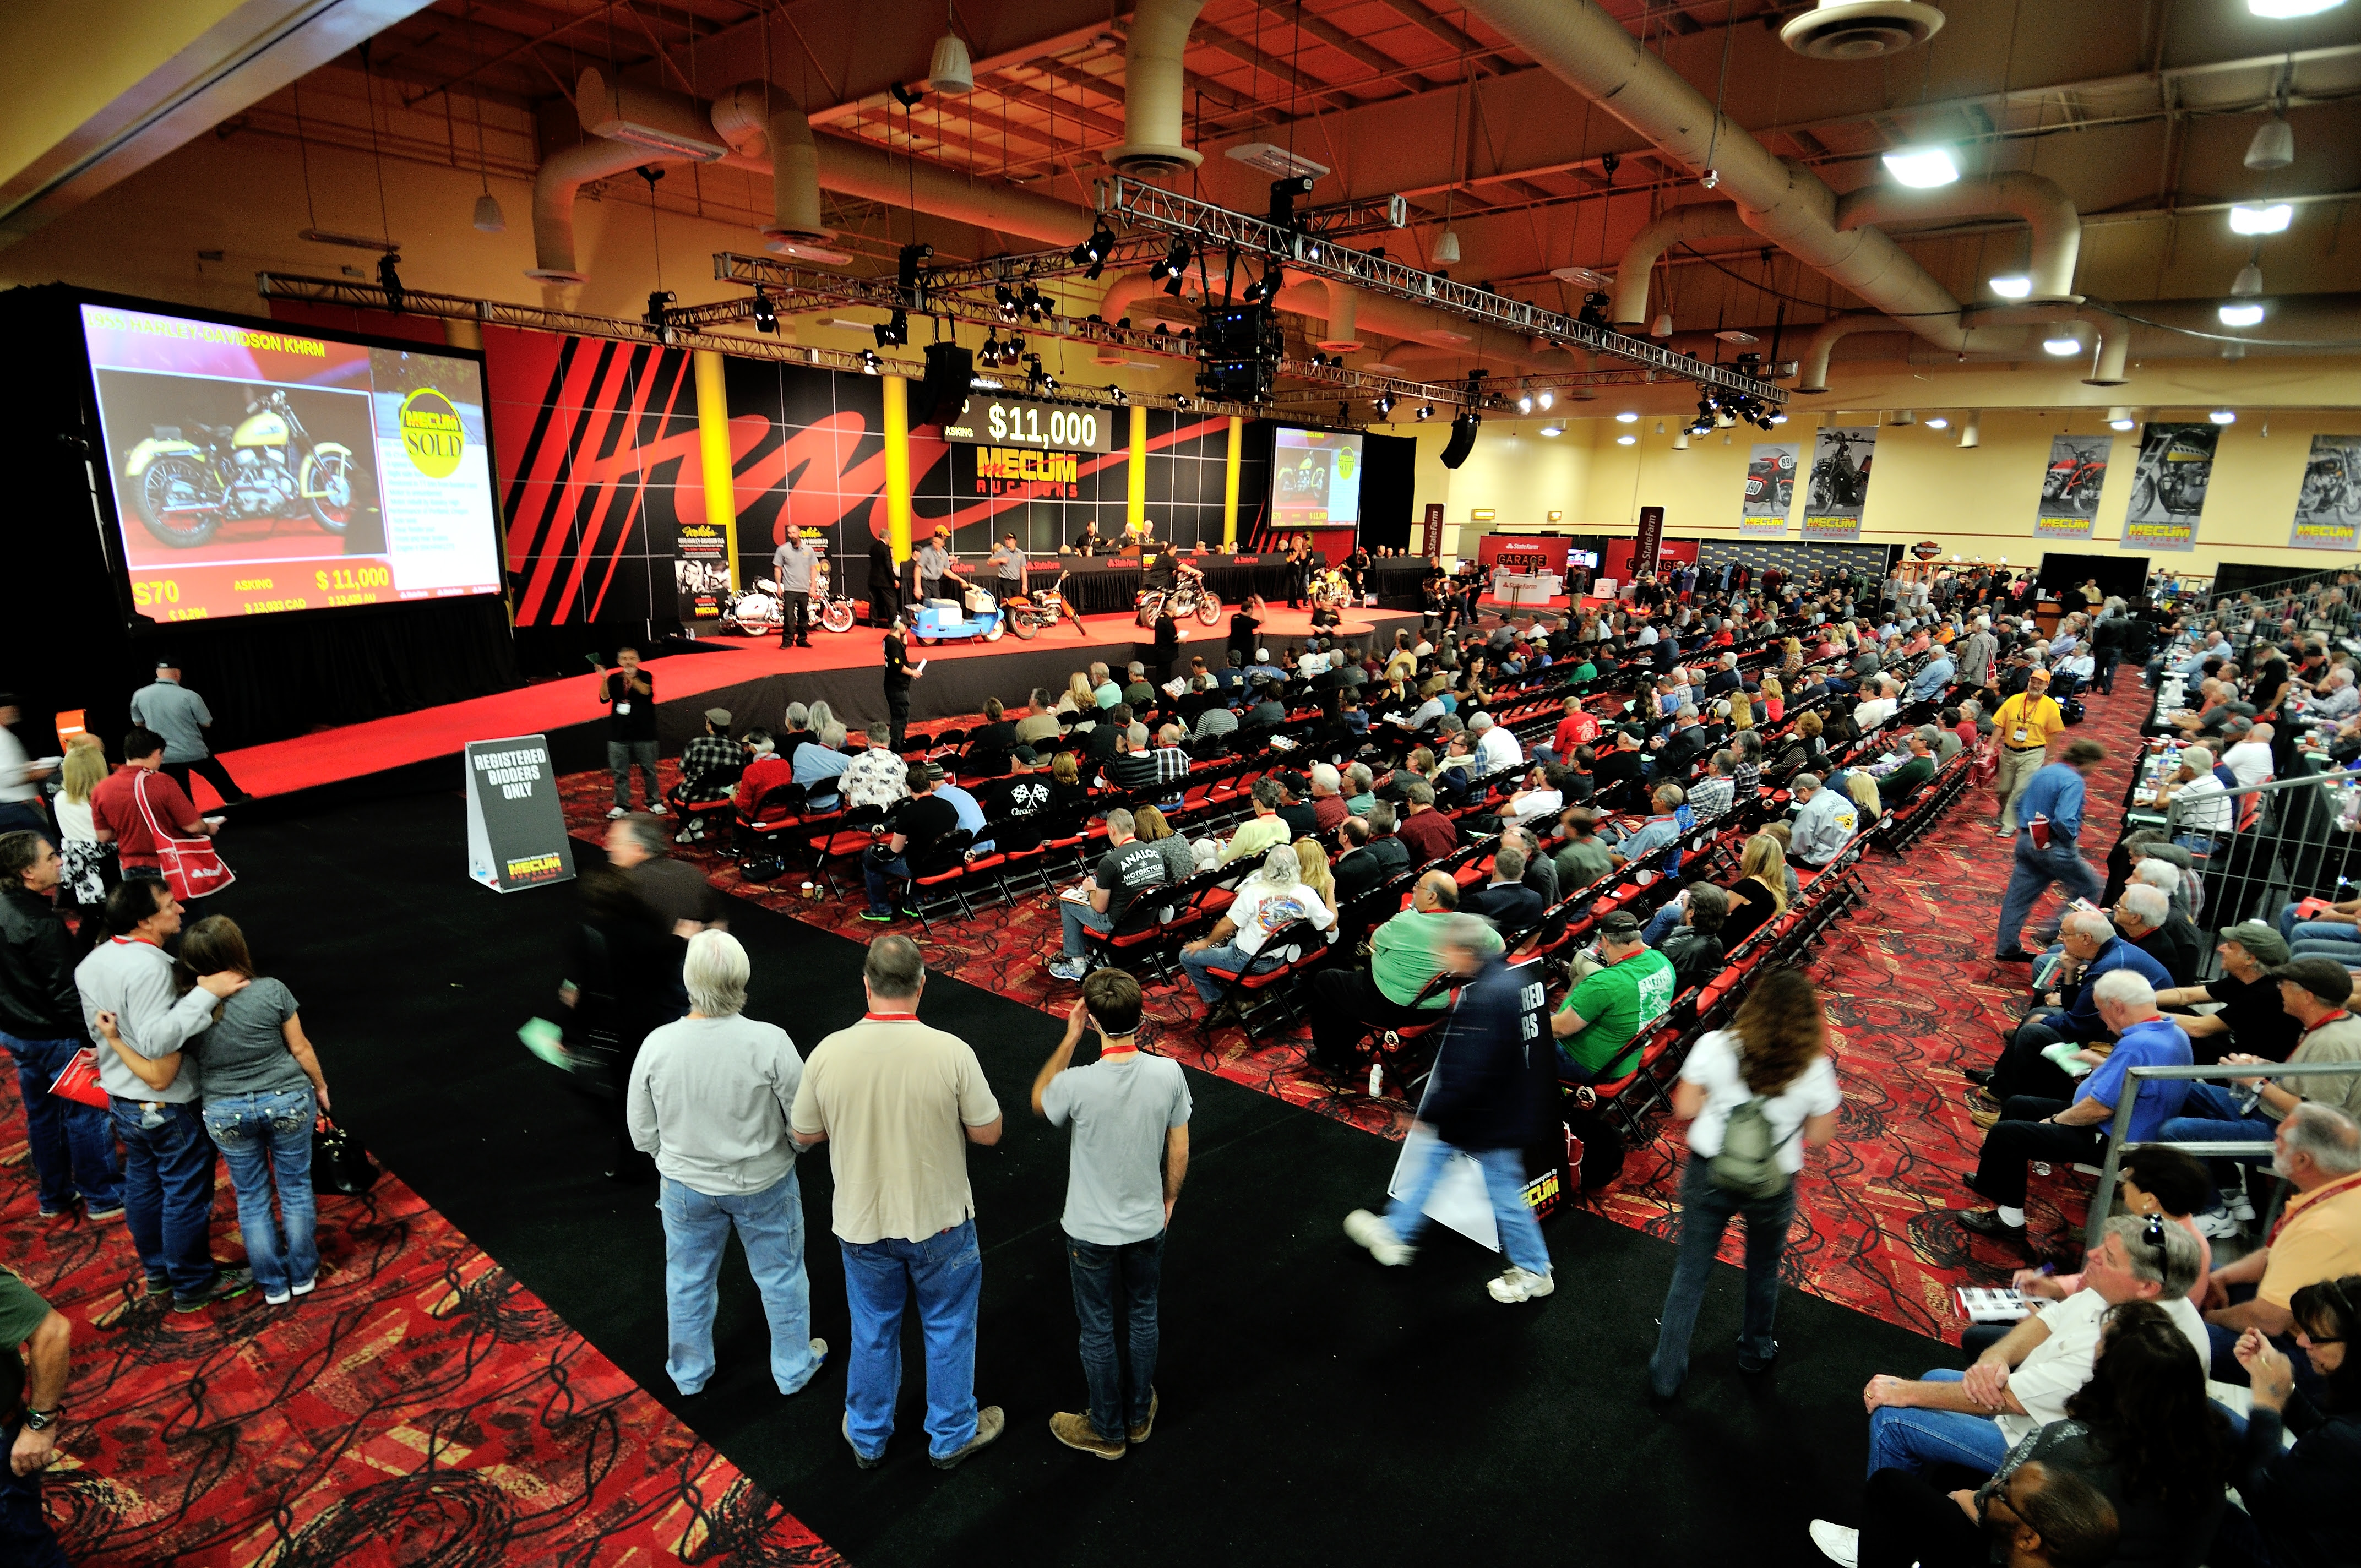 Mecum MidAmerica Las Vegas 2015 Motorcycle Auction Results